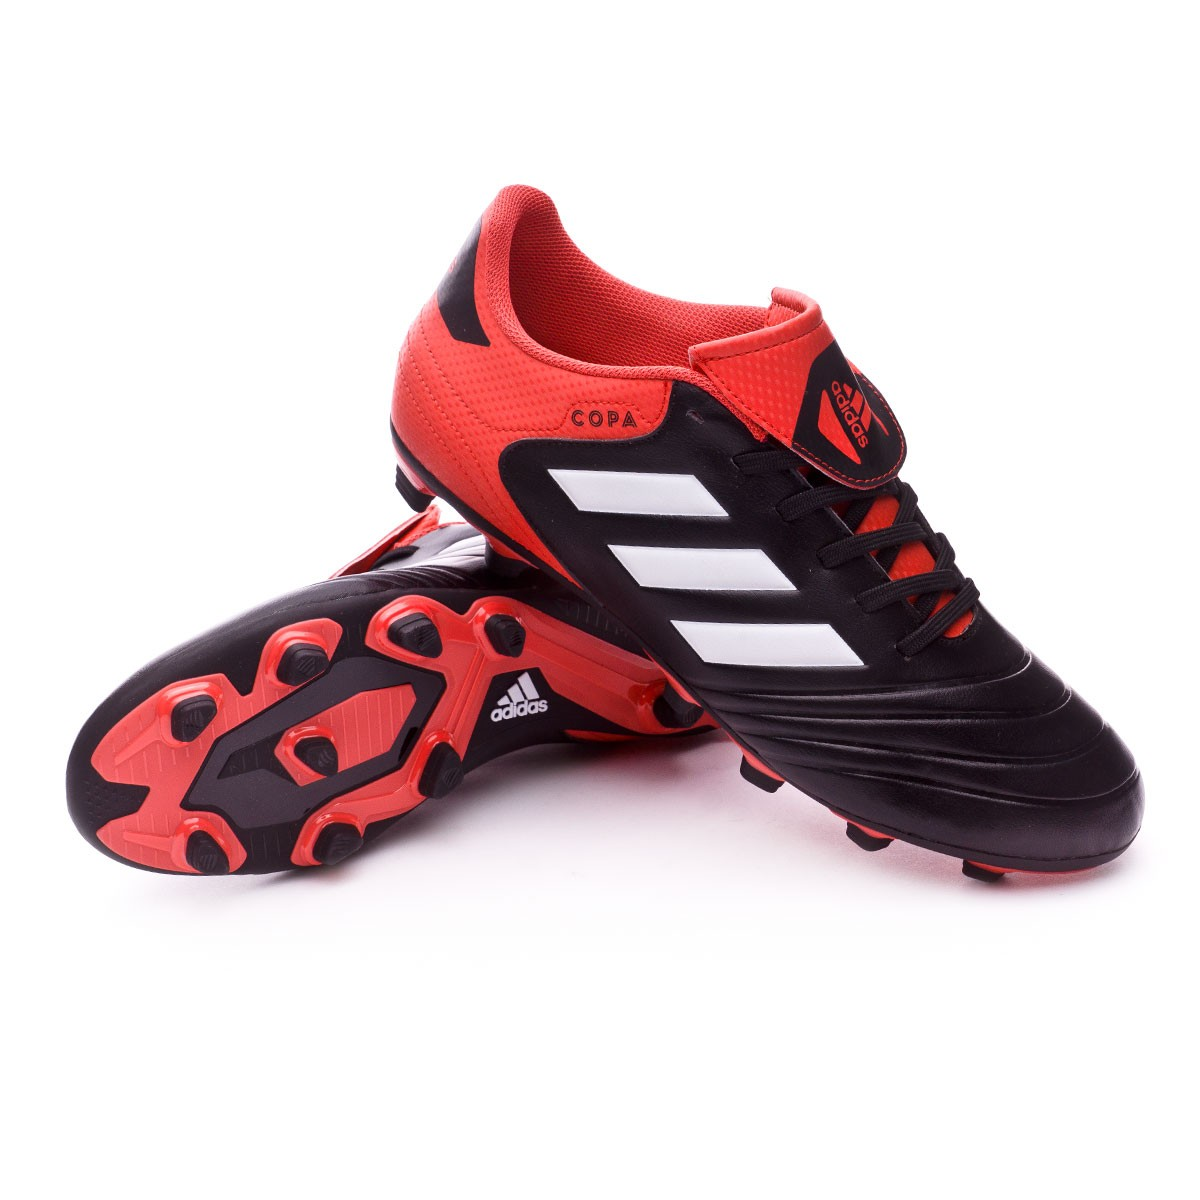 Boot adidas Copa 18.4 FxG Core black-White-Real coral - Football ... 749c1089becab